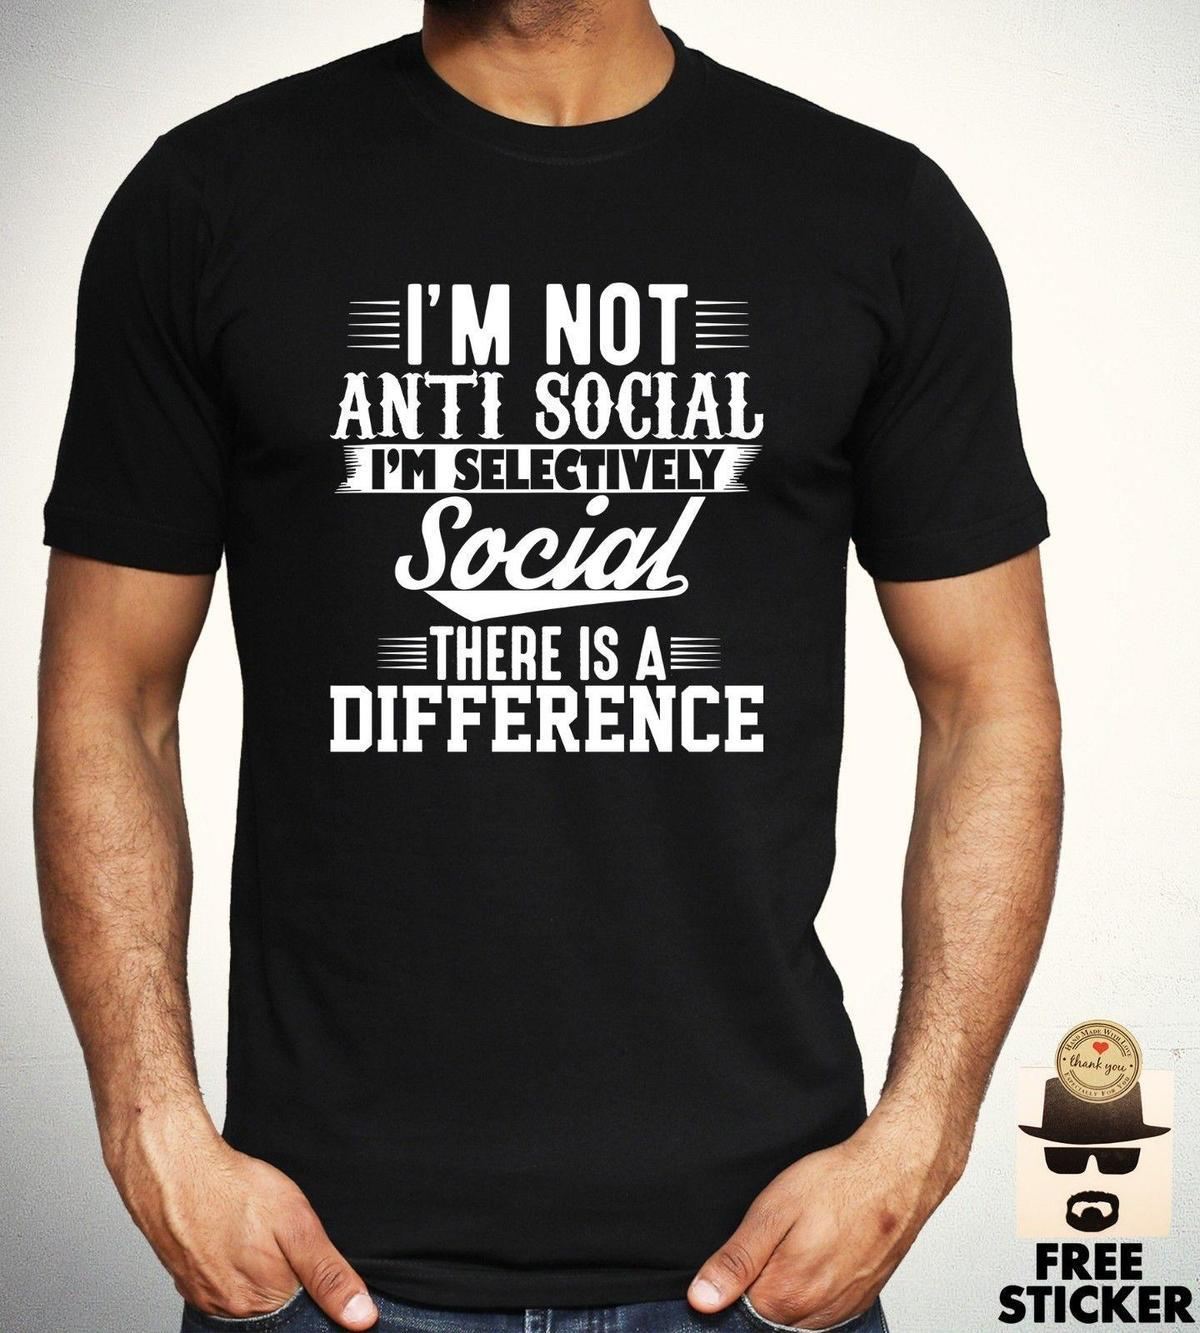 2bb42ea1 I'm Not Anti Social T shirt Funny Sarcastic Statement Party Gift Top Mens  Women